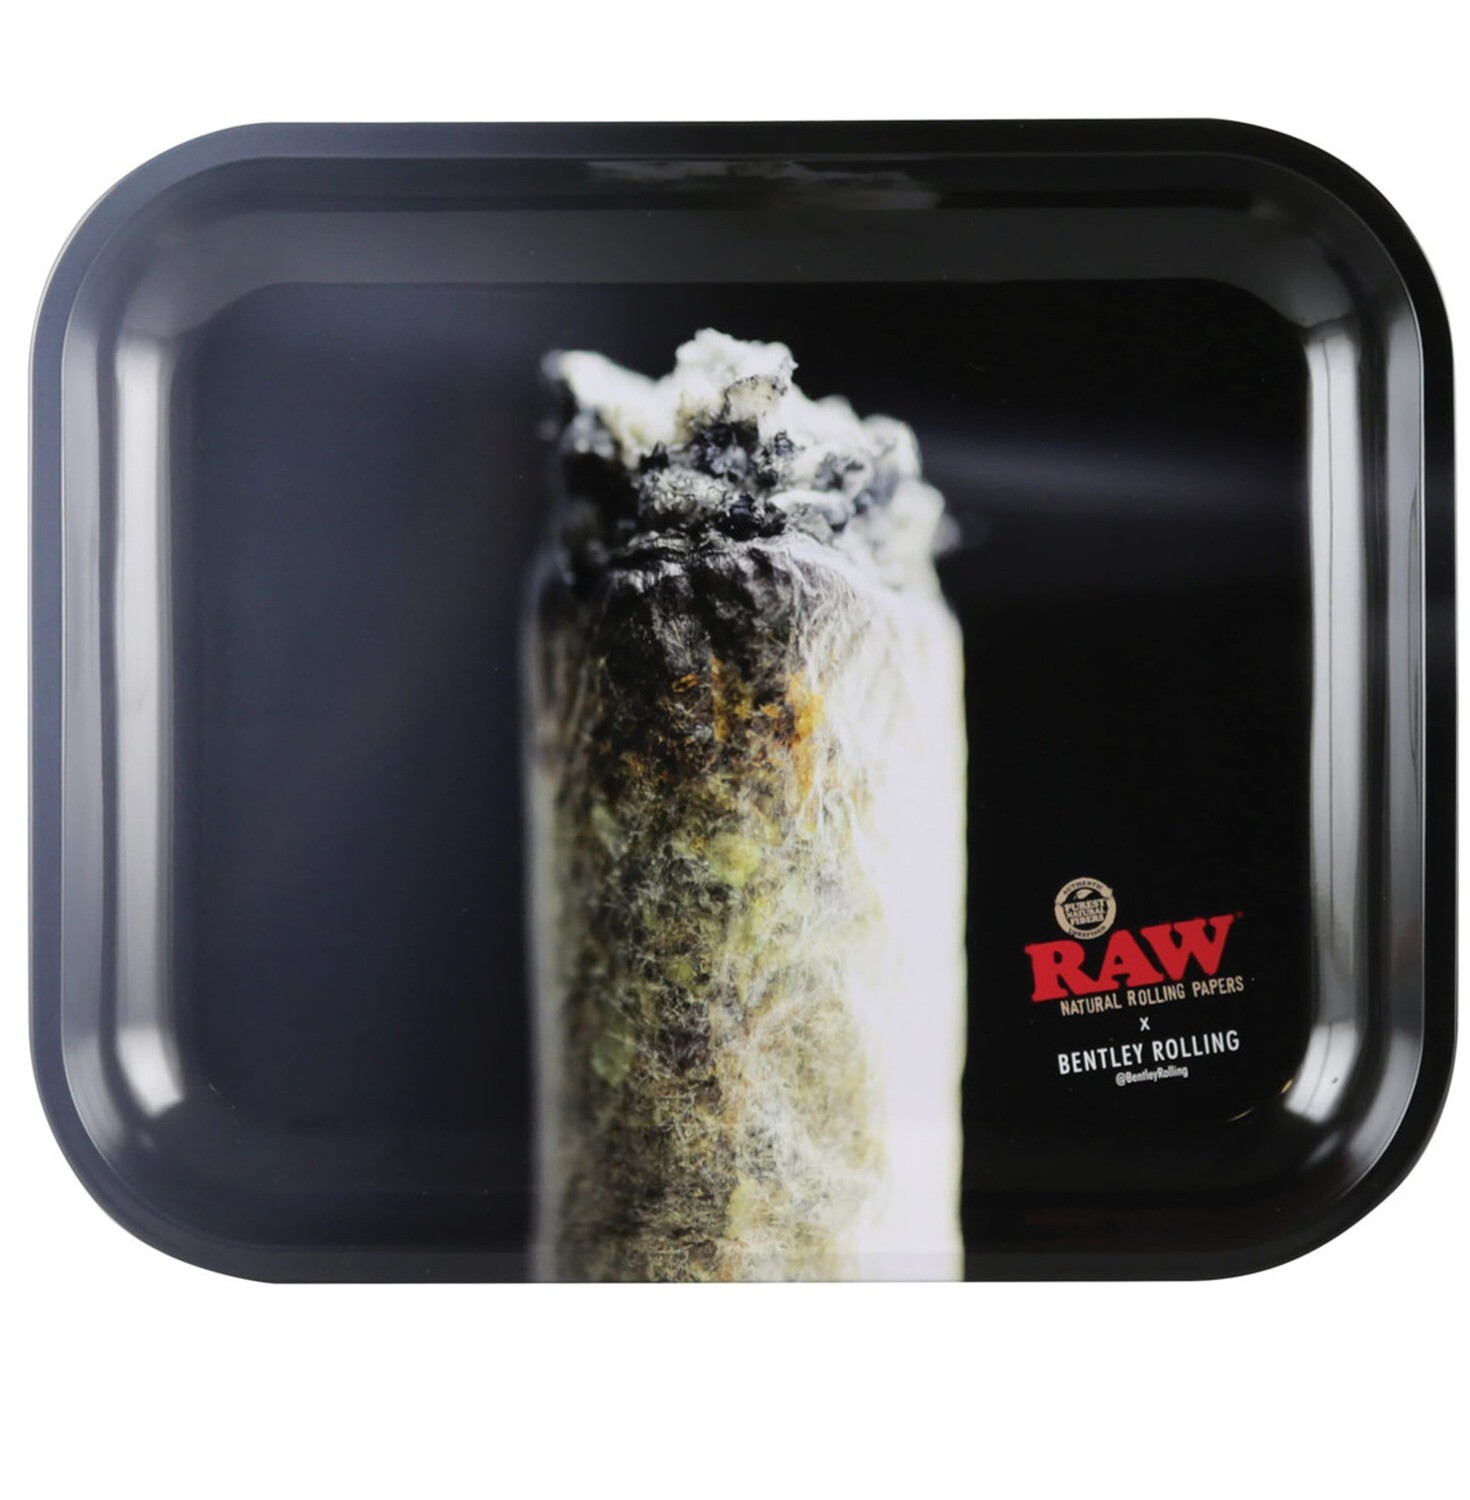 Raw - Bentley rolling large tray